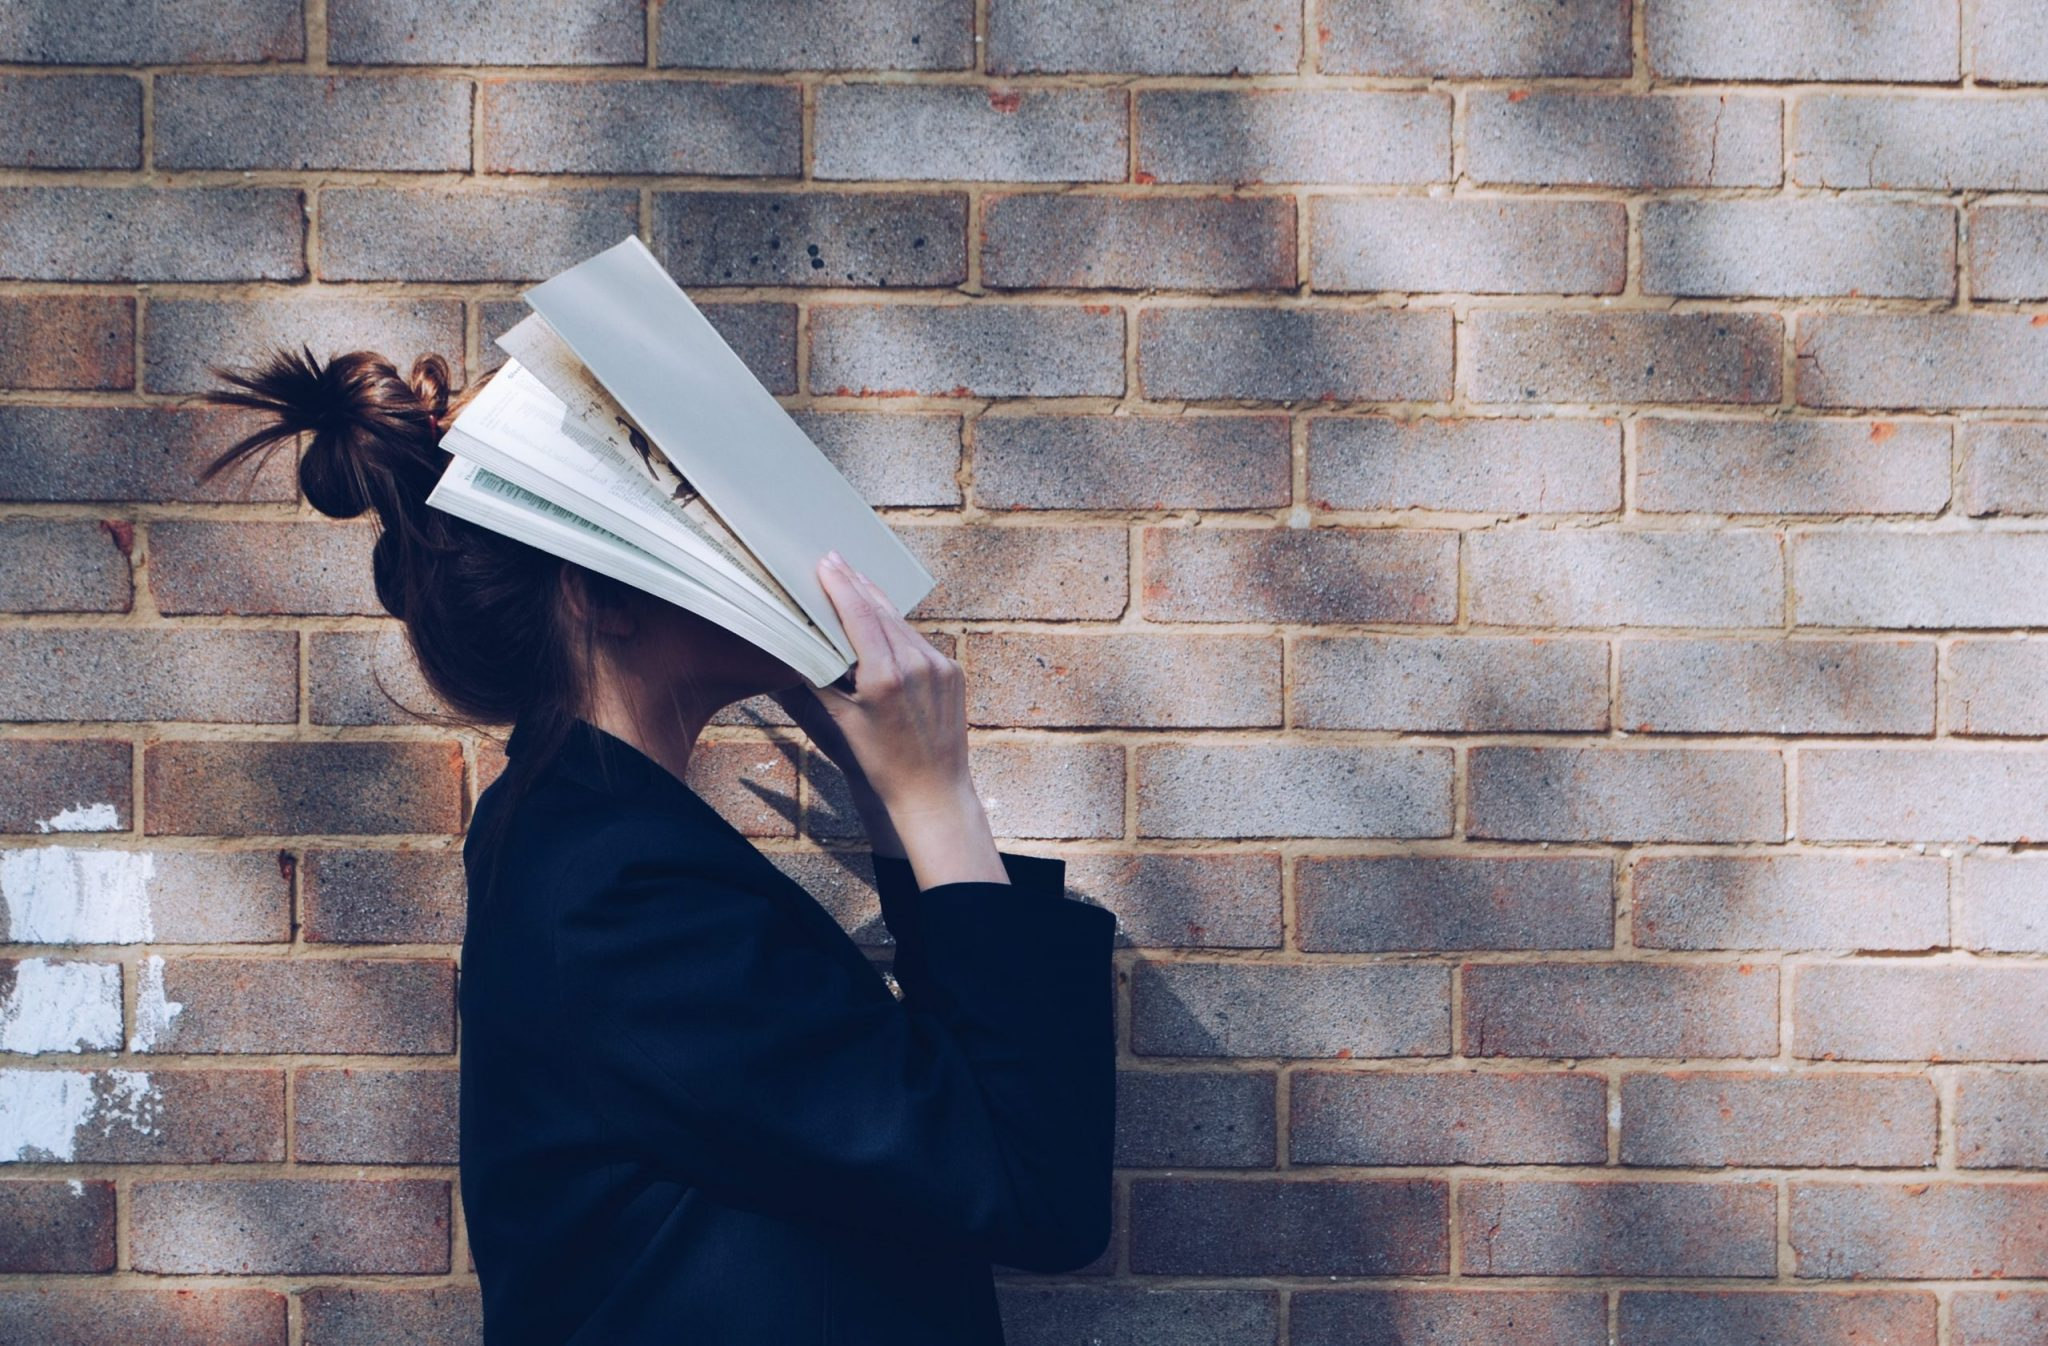 A photo of a woman with a book on her face.